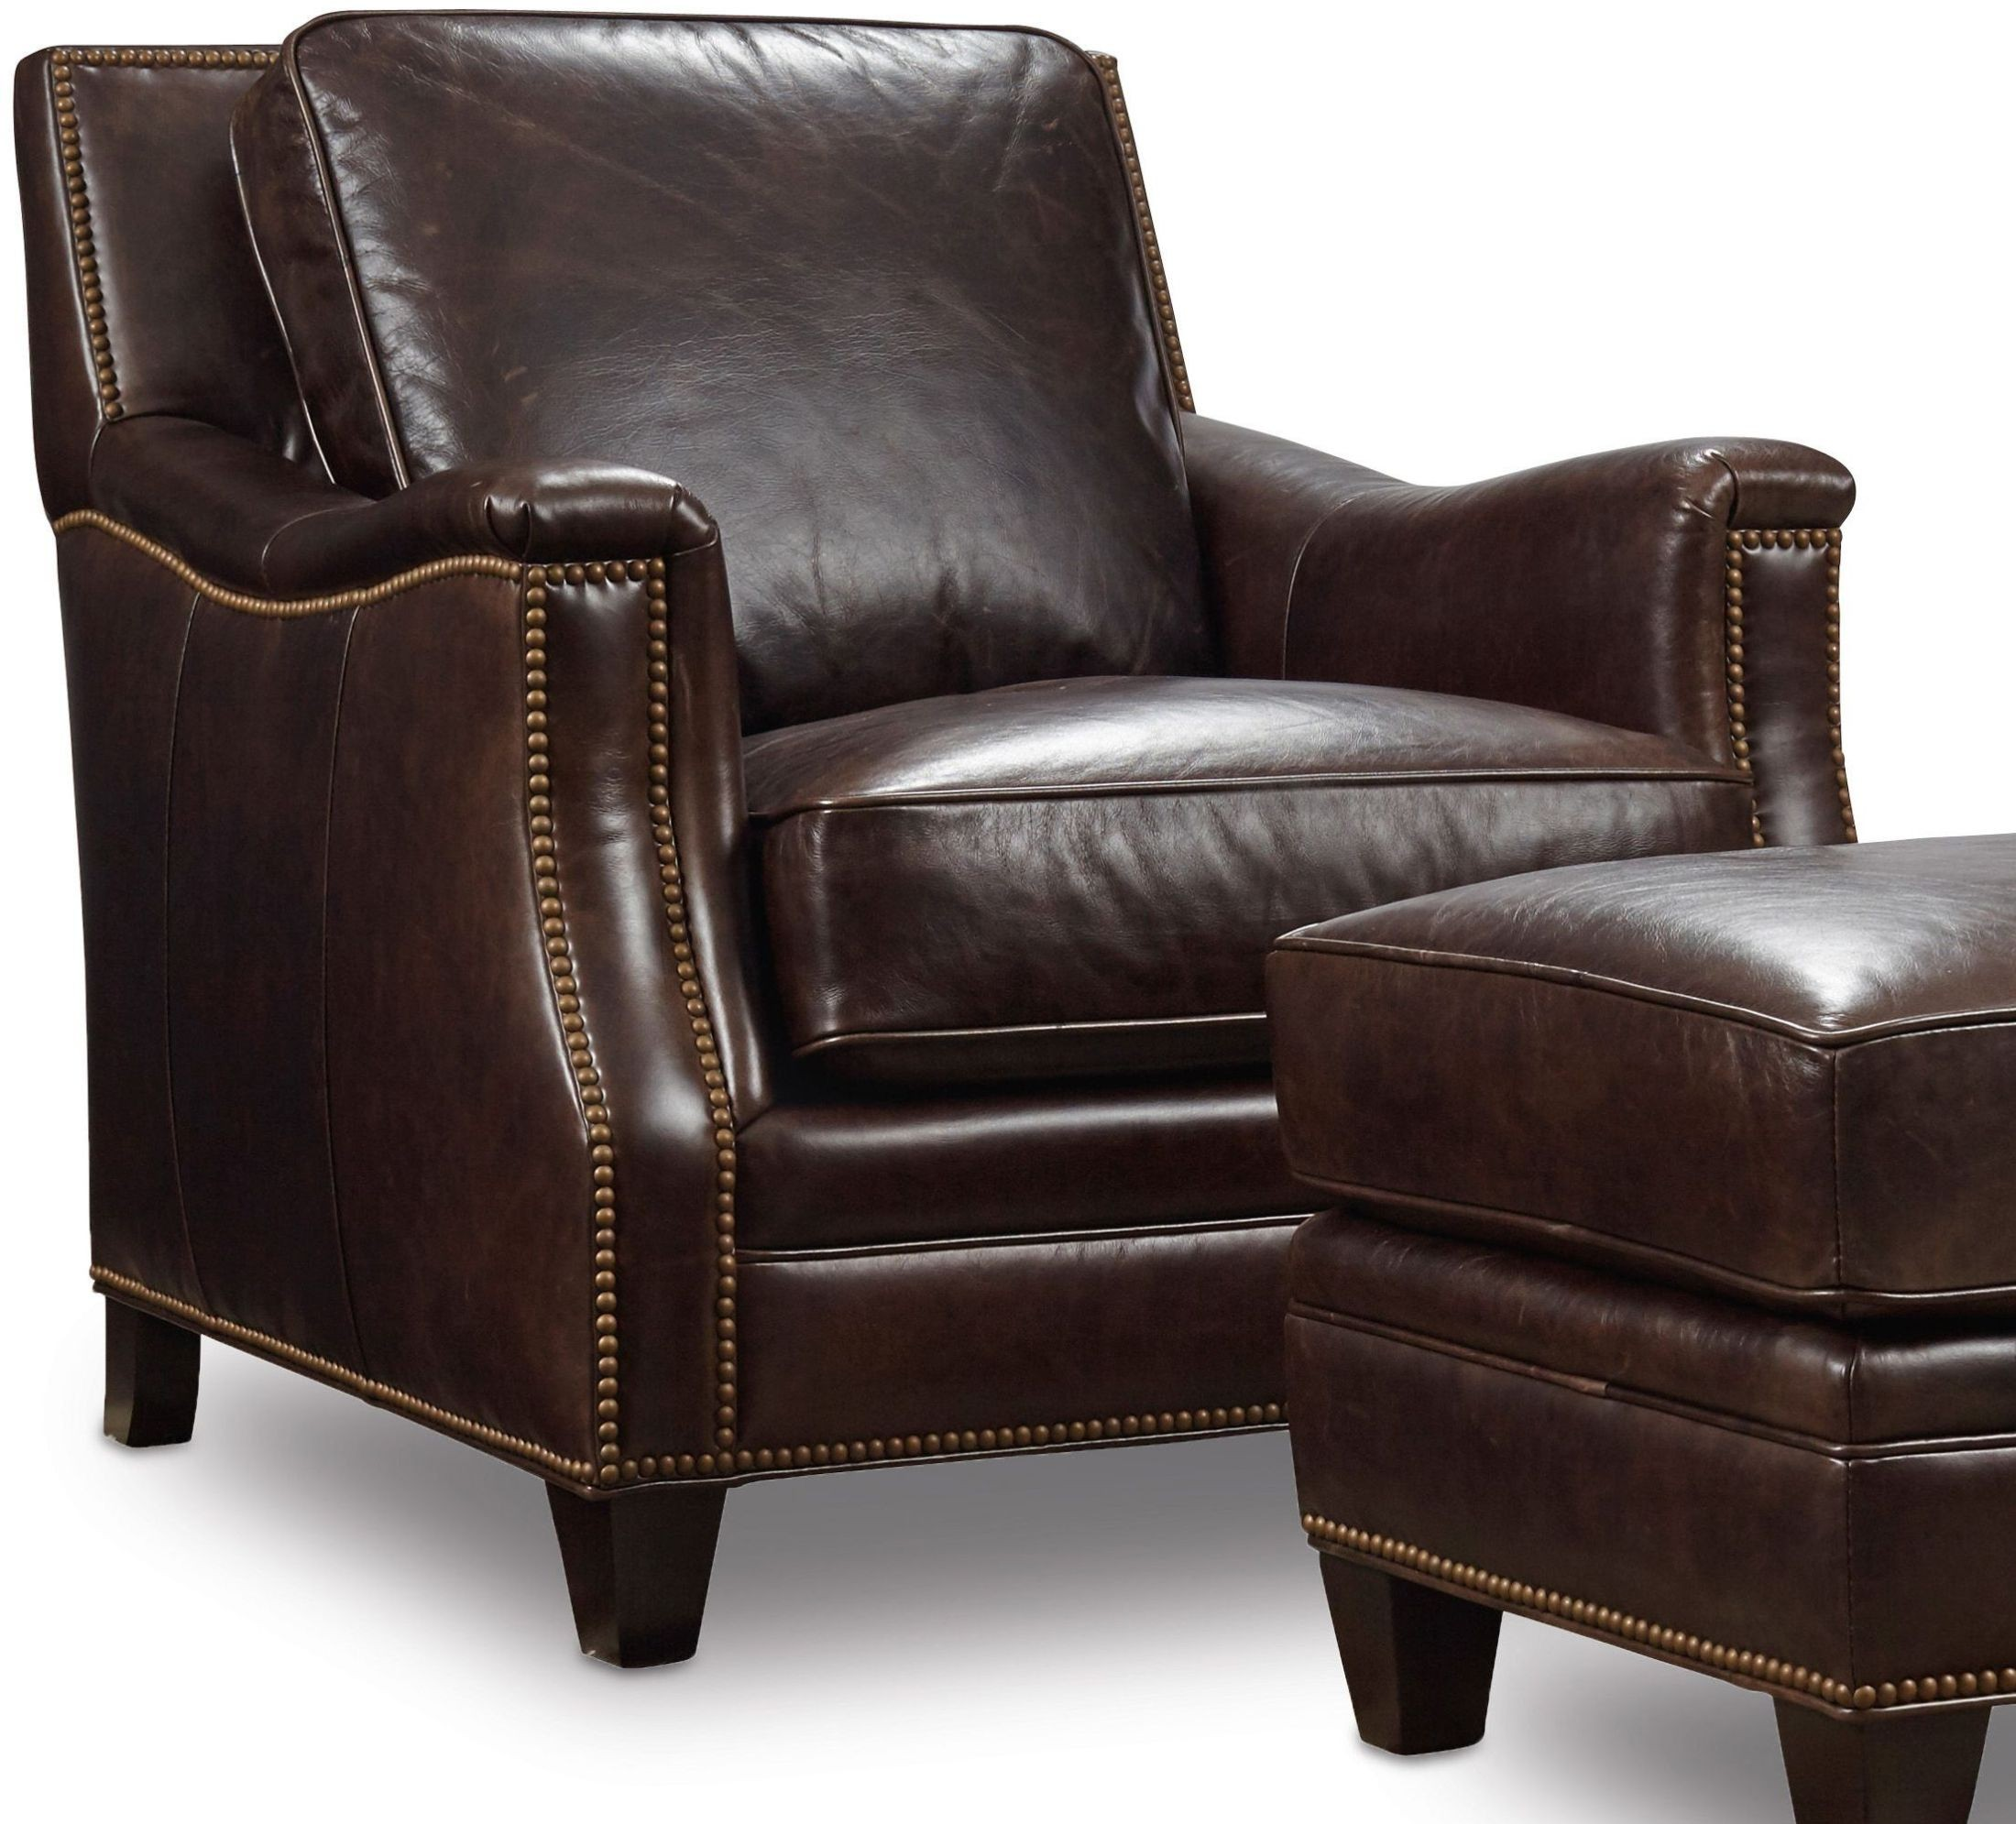 Hooker Leather Chair Bradshaw Brown Leather Chair From Hooker Coleman Furniture